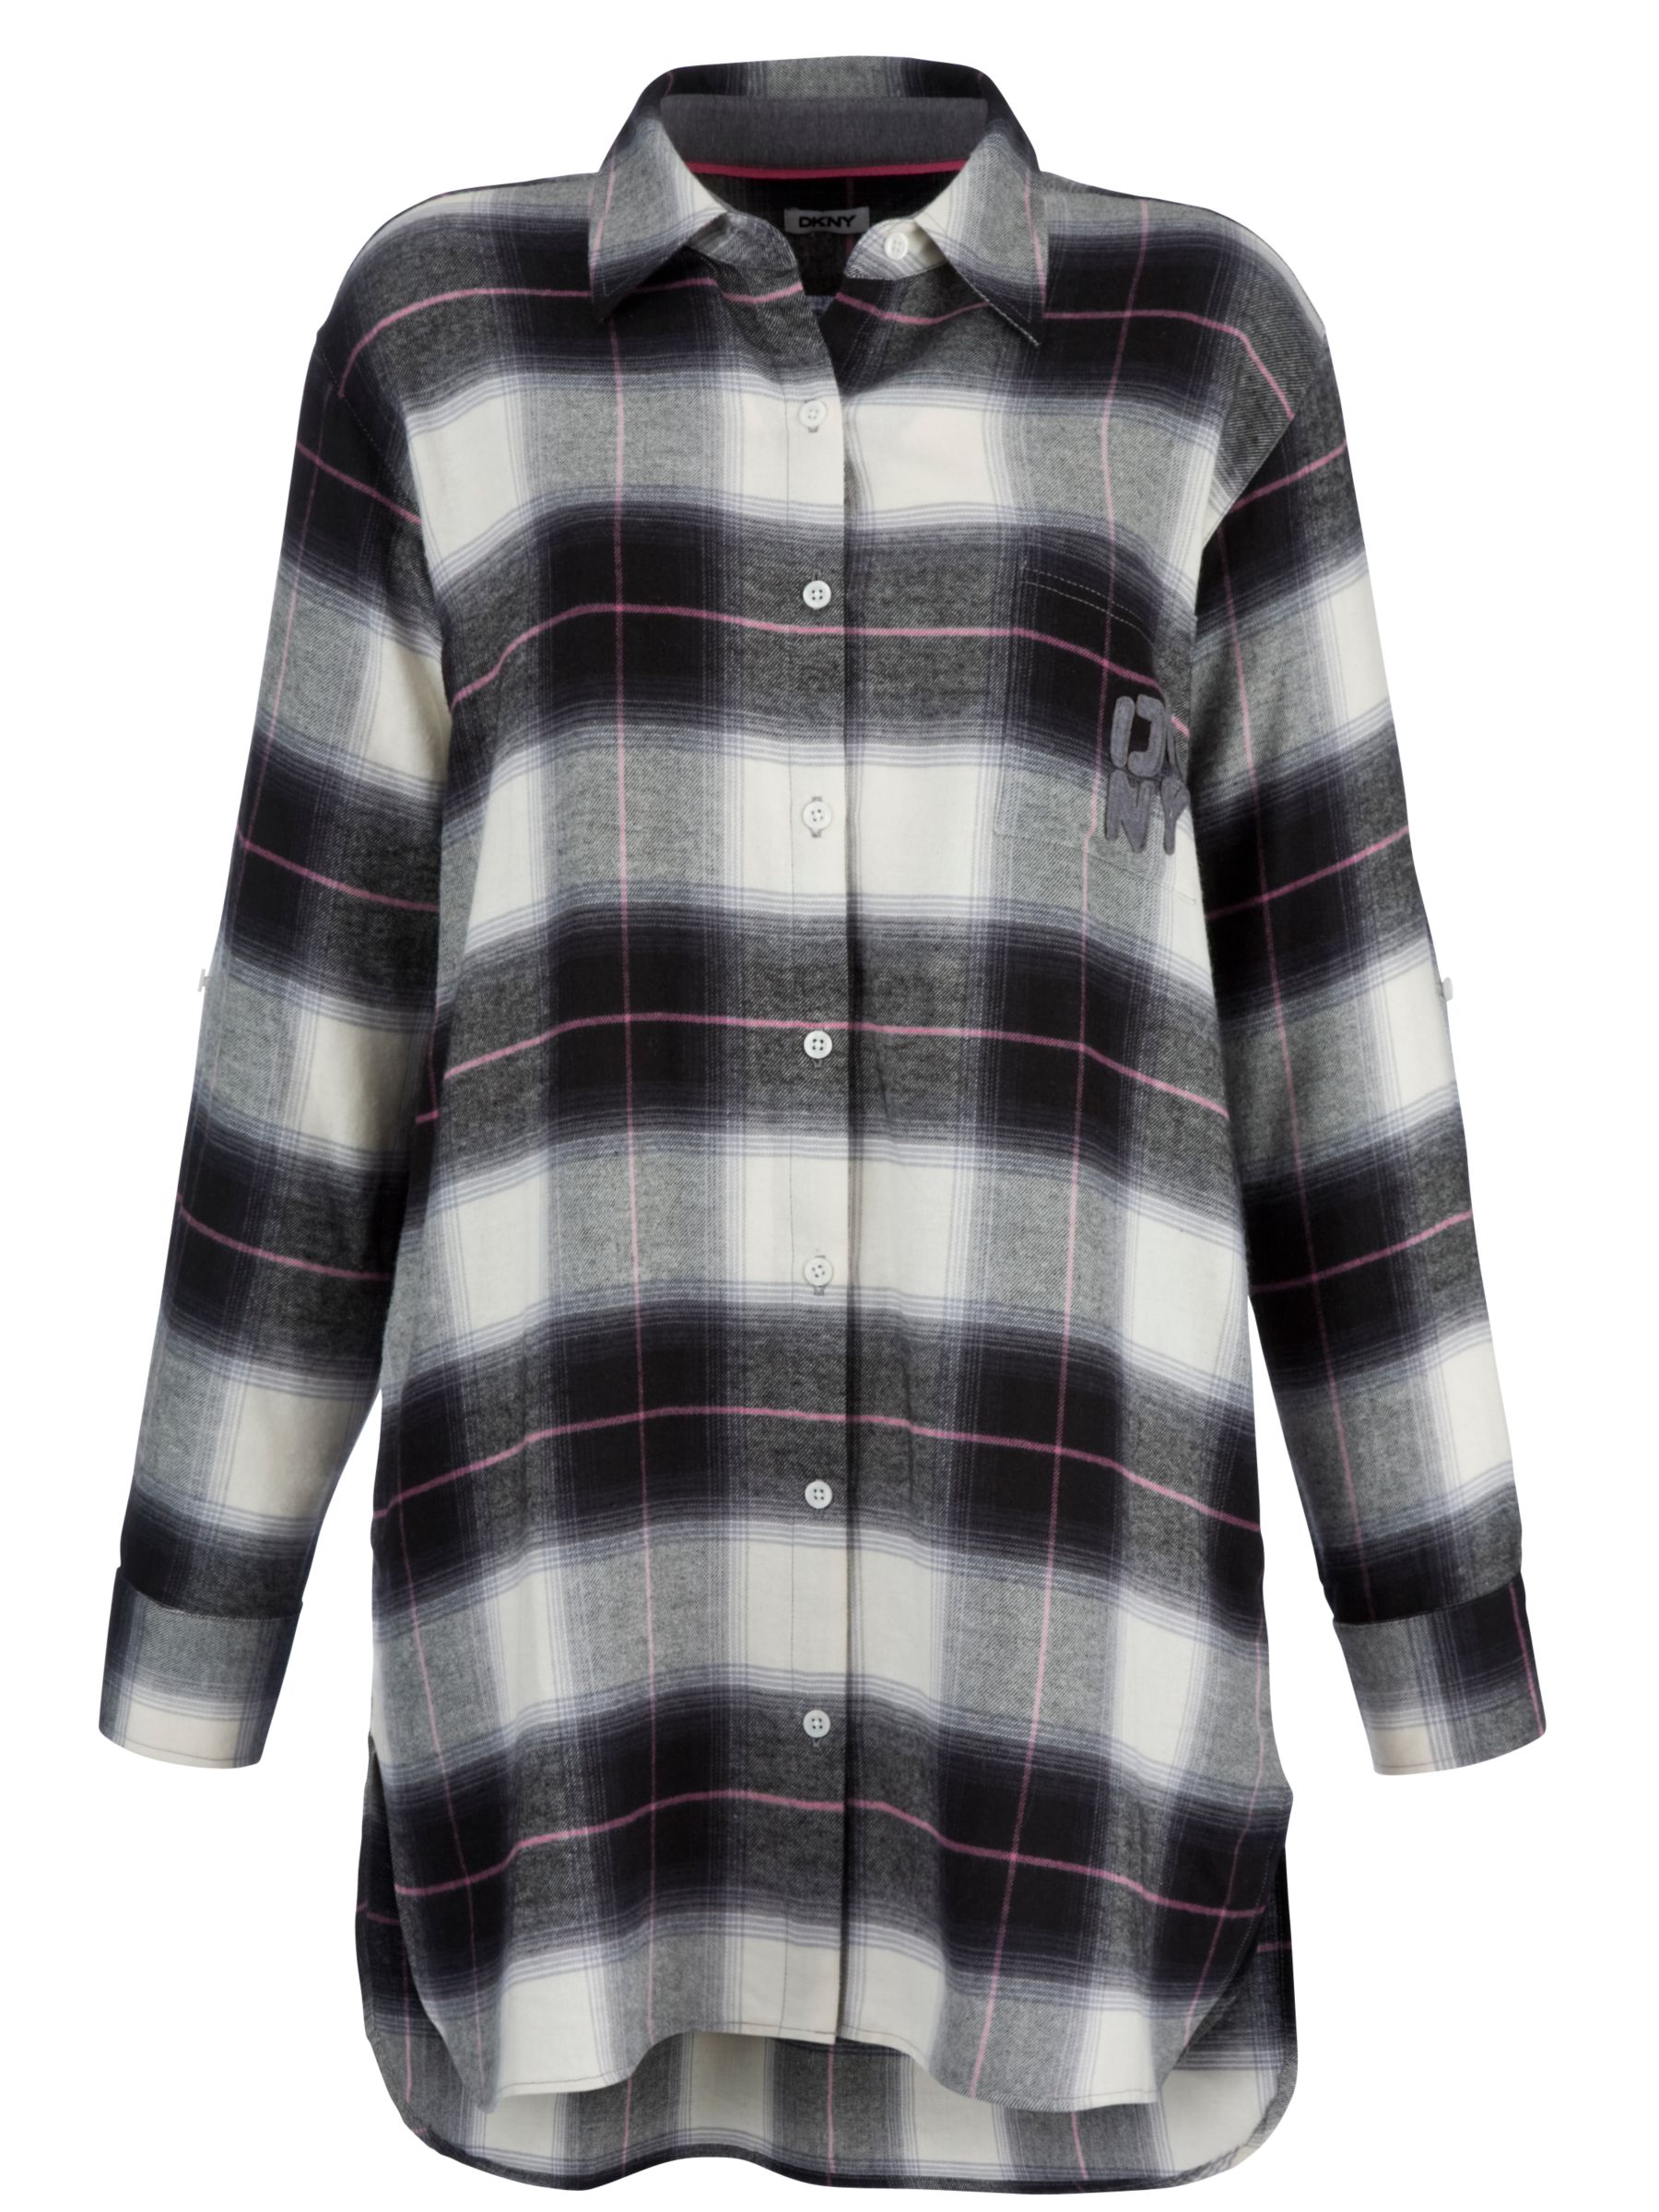 DKNY Pattern Play Check Nightshirt, Grey